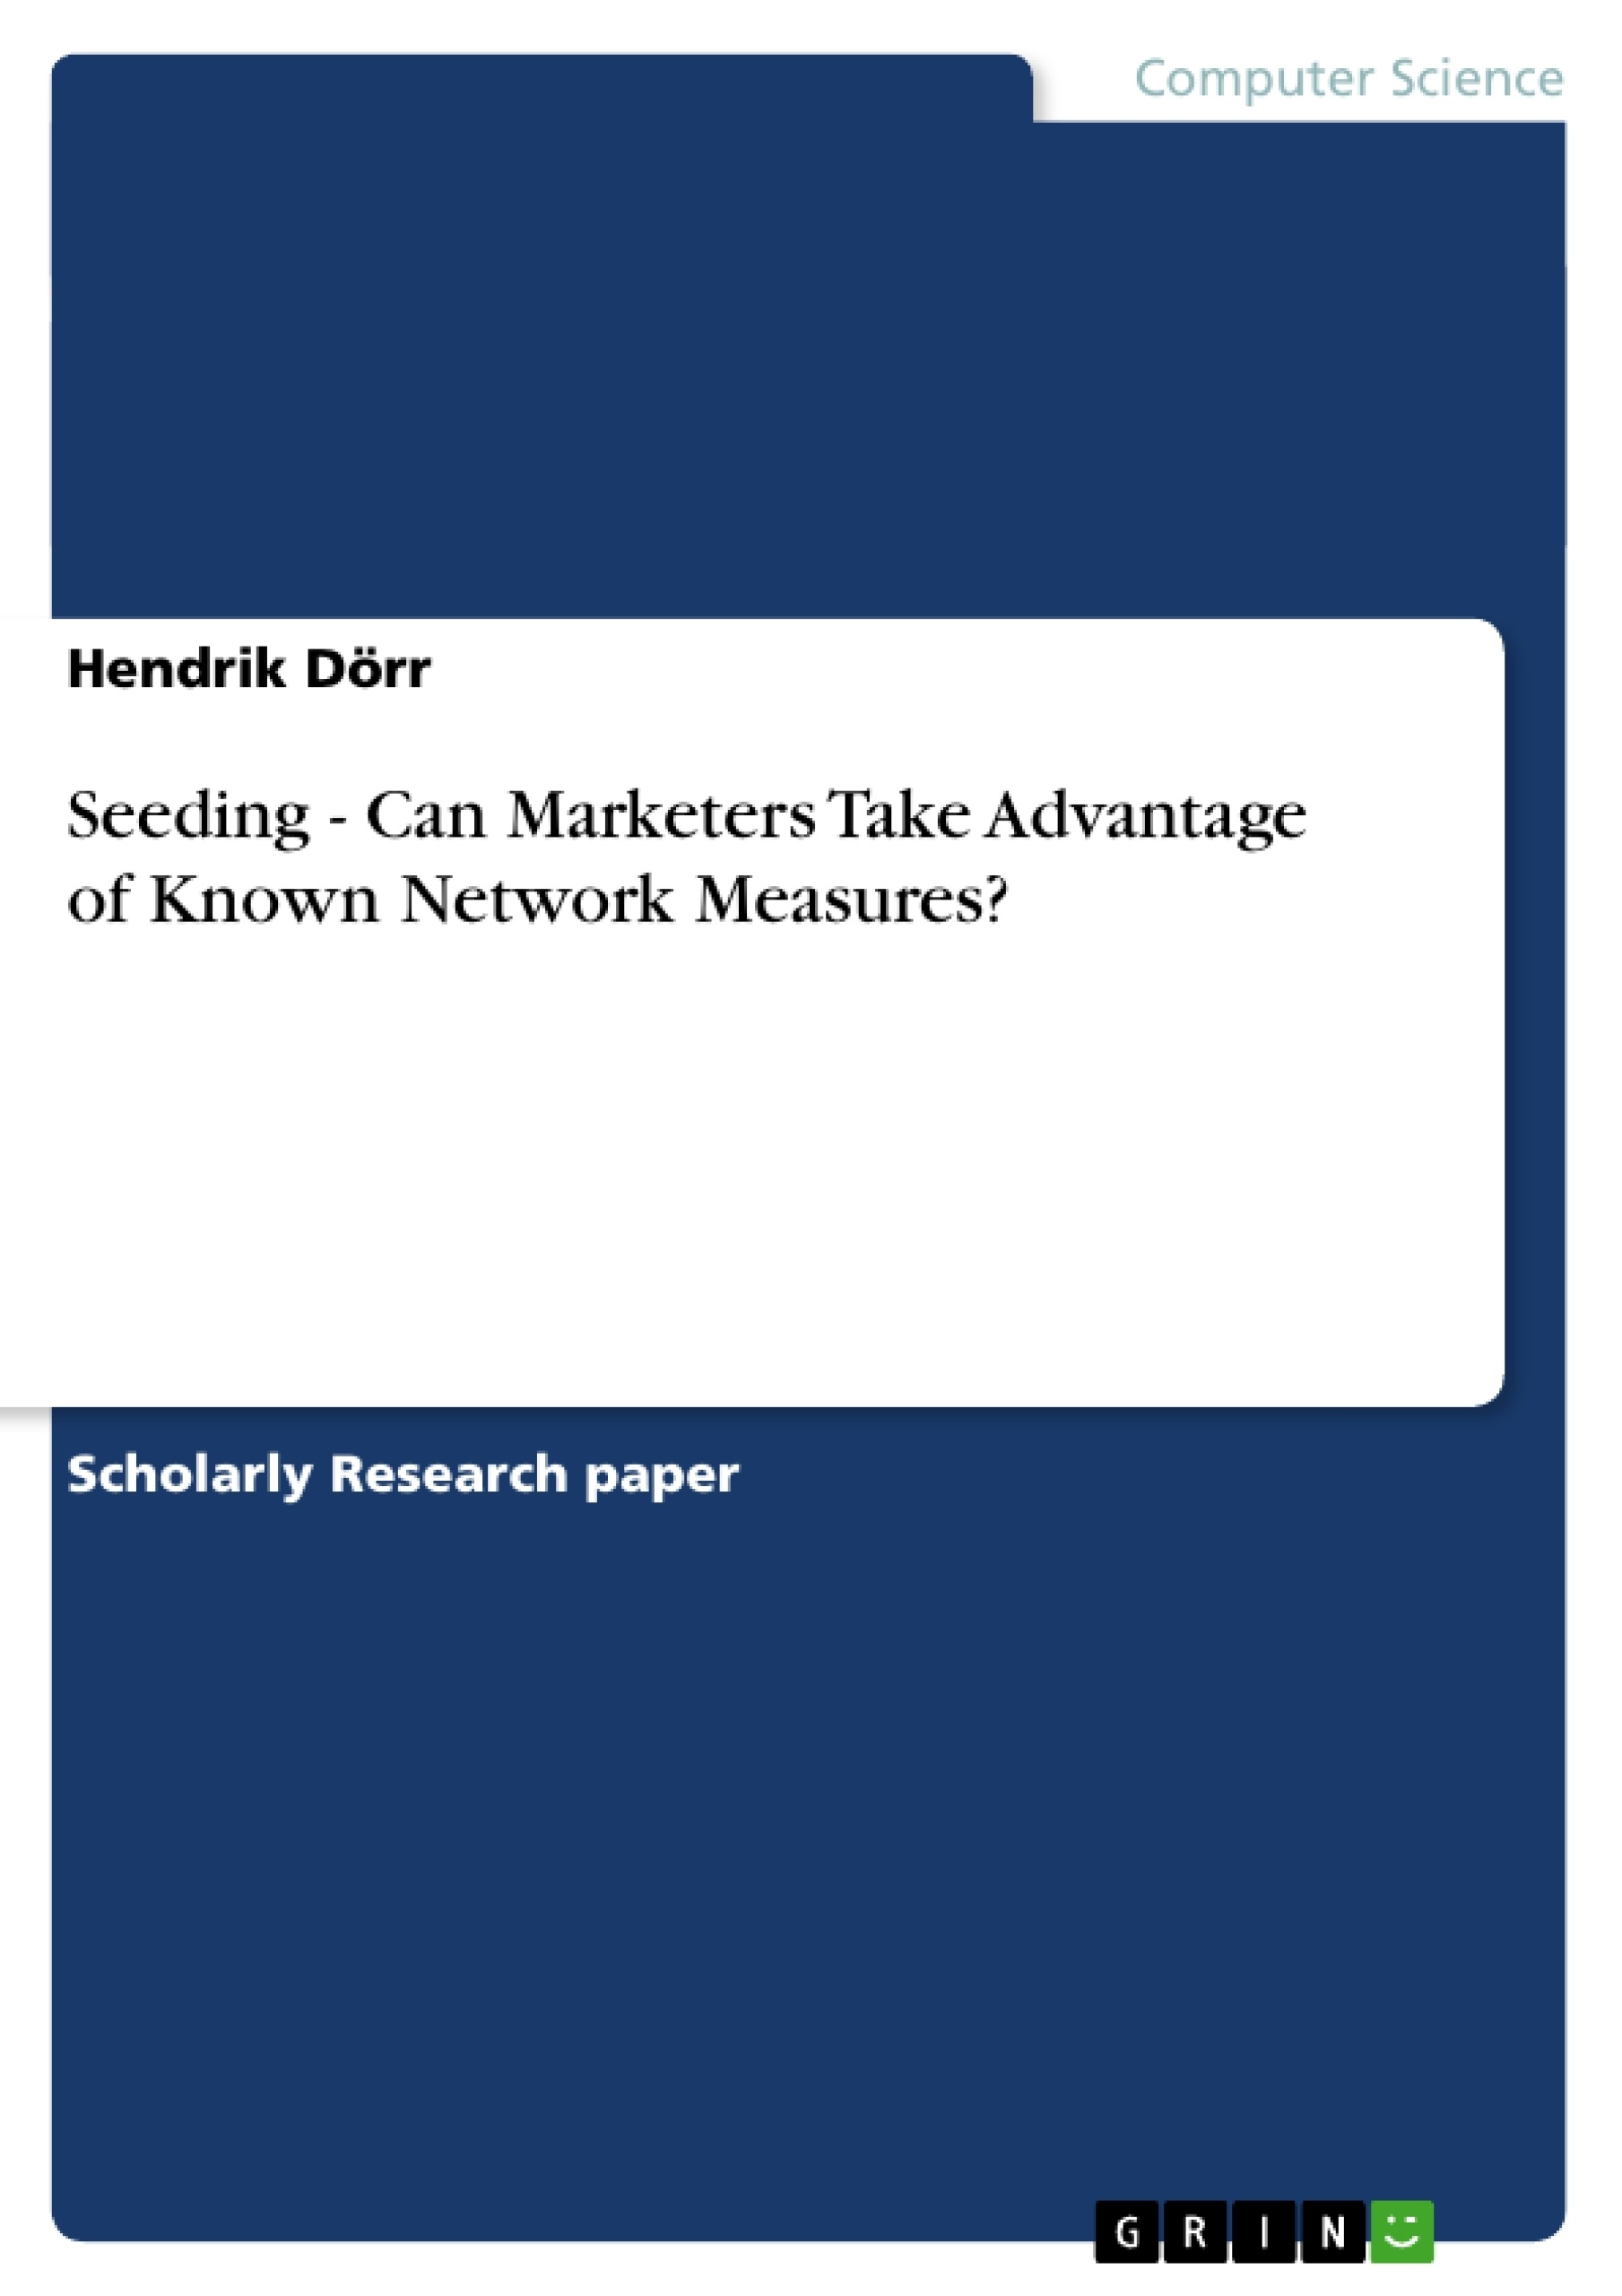 Title: Seeding - Can Marketers Take Advantage of Known Network Measures?